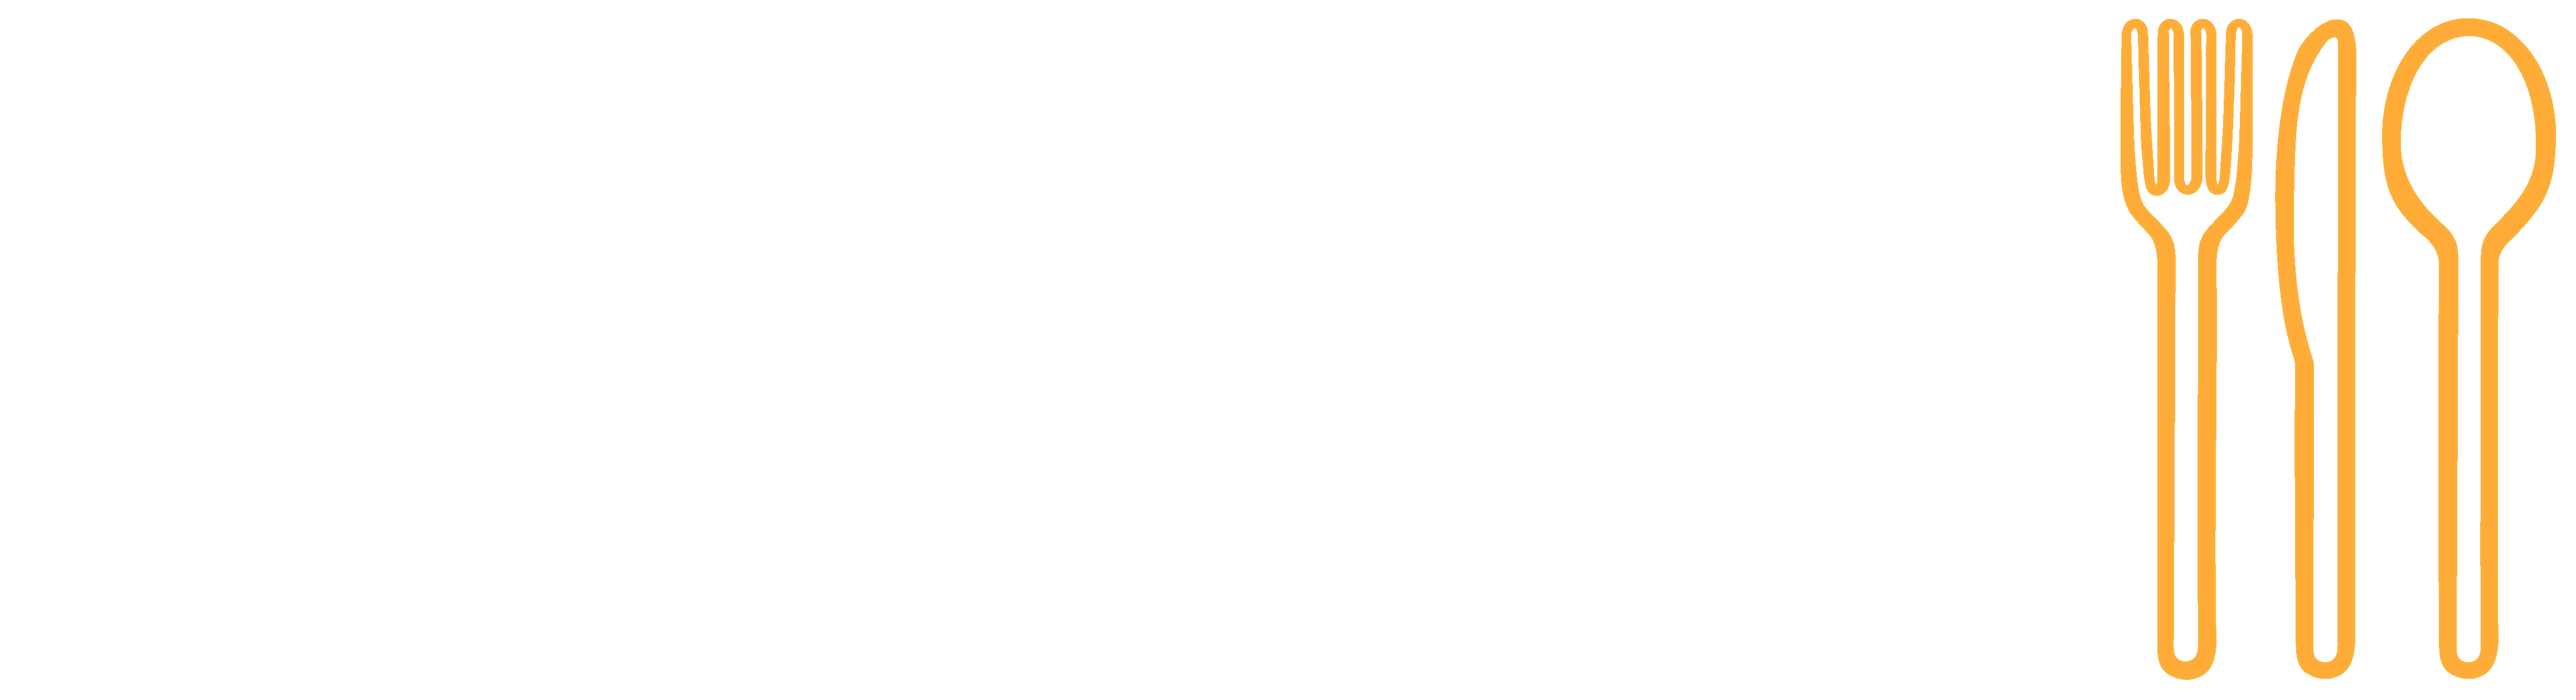 What's the Deal? logo with white text